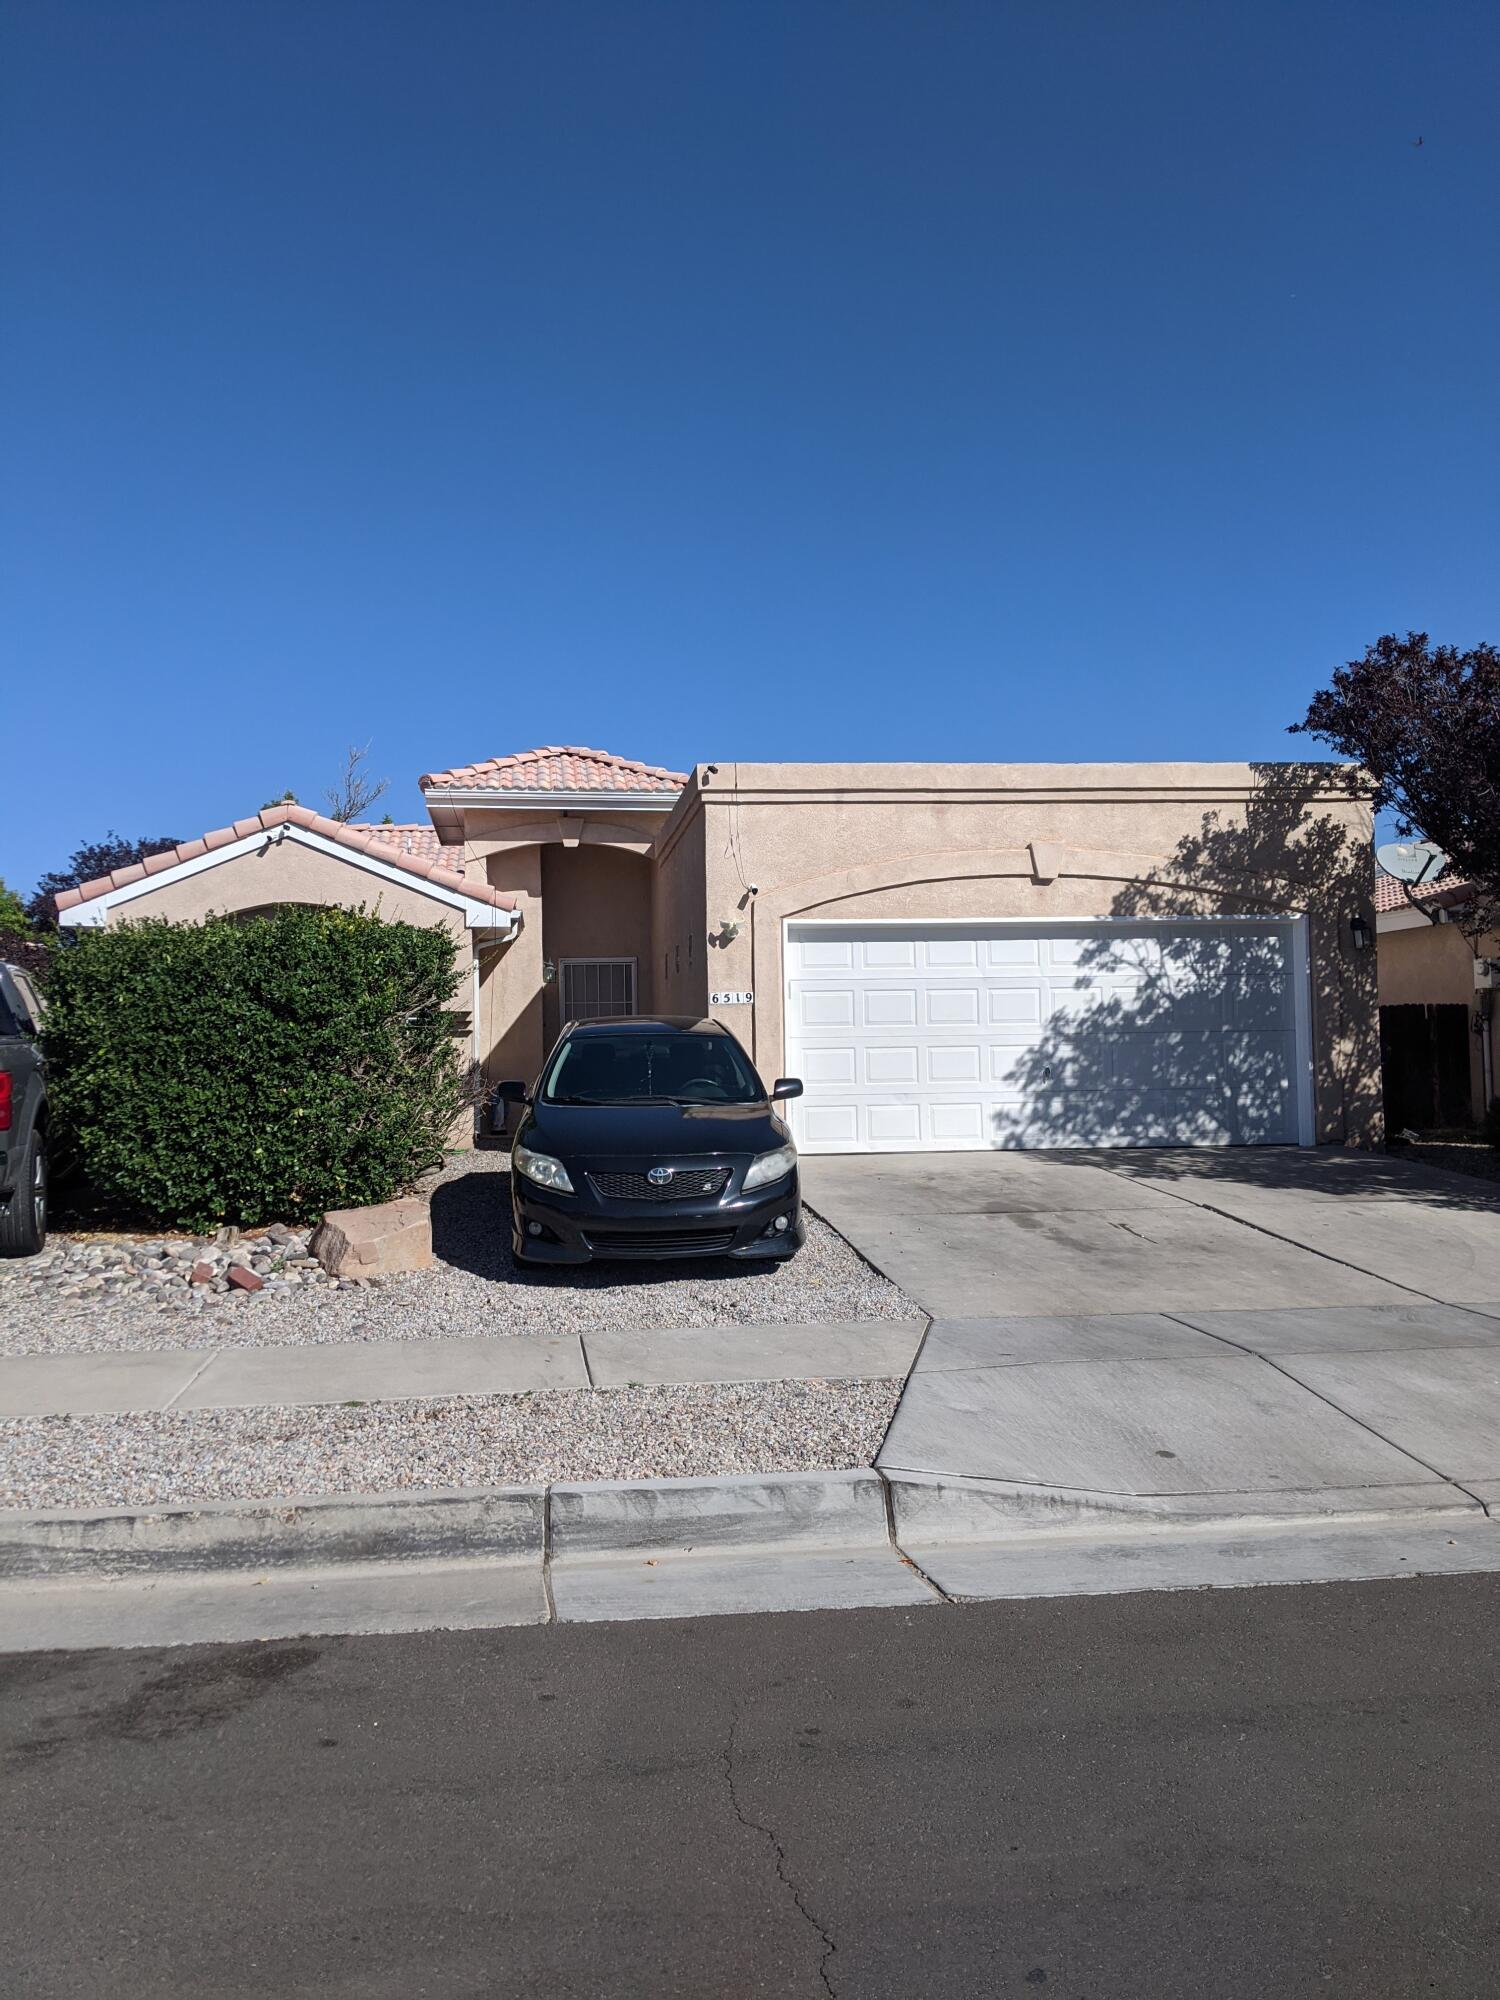 Light and Bright with Vaulted Ceilings, Glass Block Windows and Skylights! Kitchen has an Island and pass through with countertop to living room. Master with double sinks and walk in closet. Beautiful Tile Roof in Great Neighborhood!